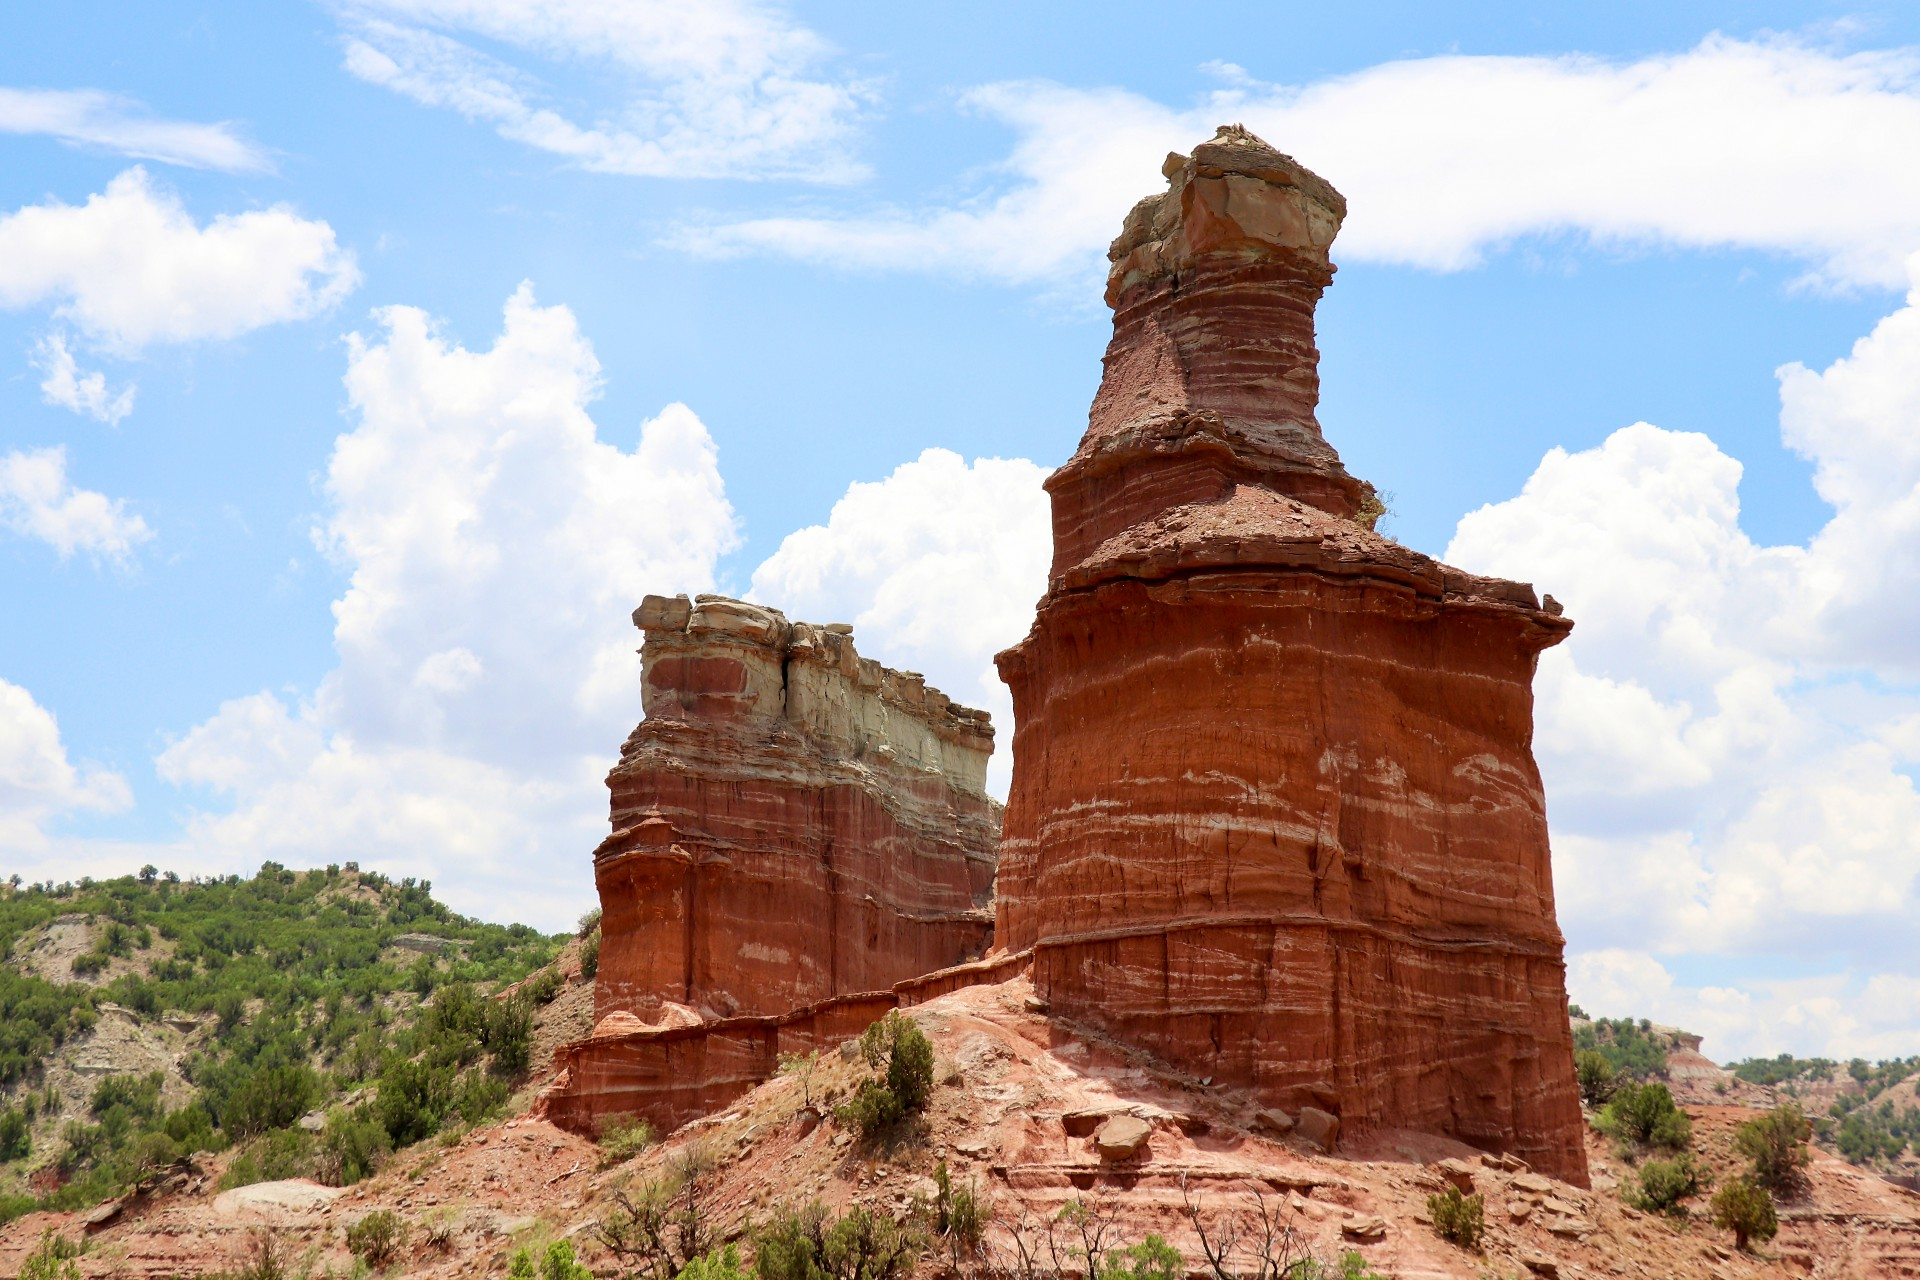 The Lighthouse Rock Formation Photographed By Sara Turbyfill At Palo Duro Canyon.